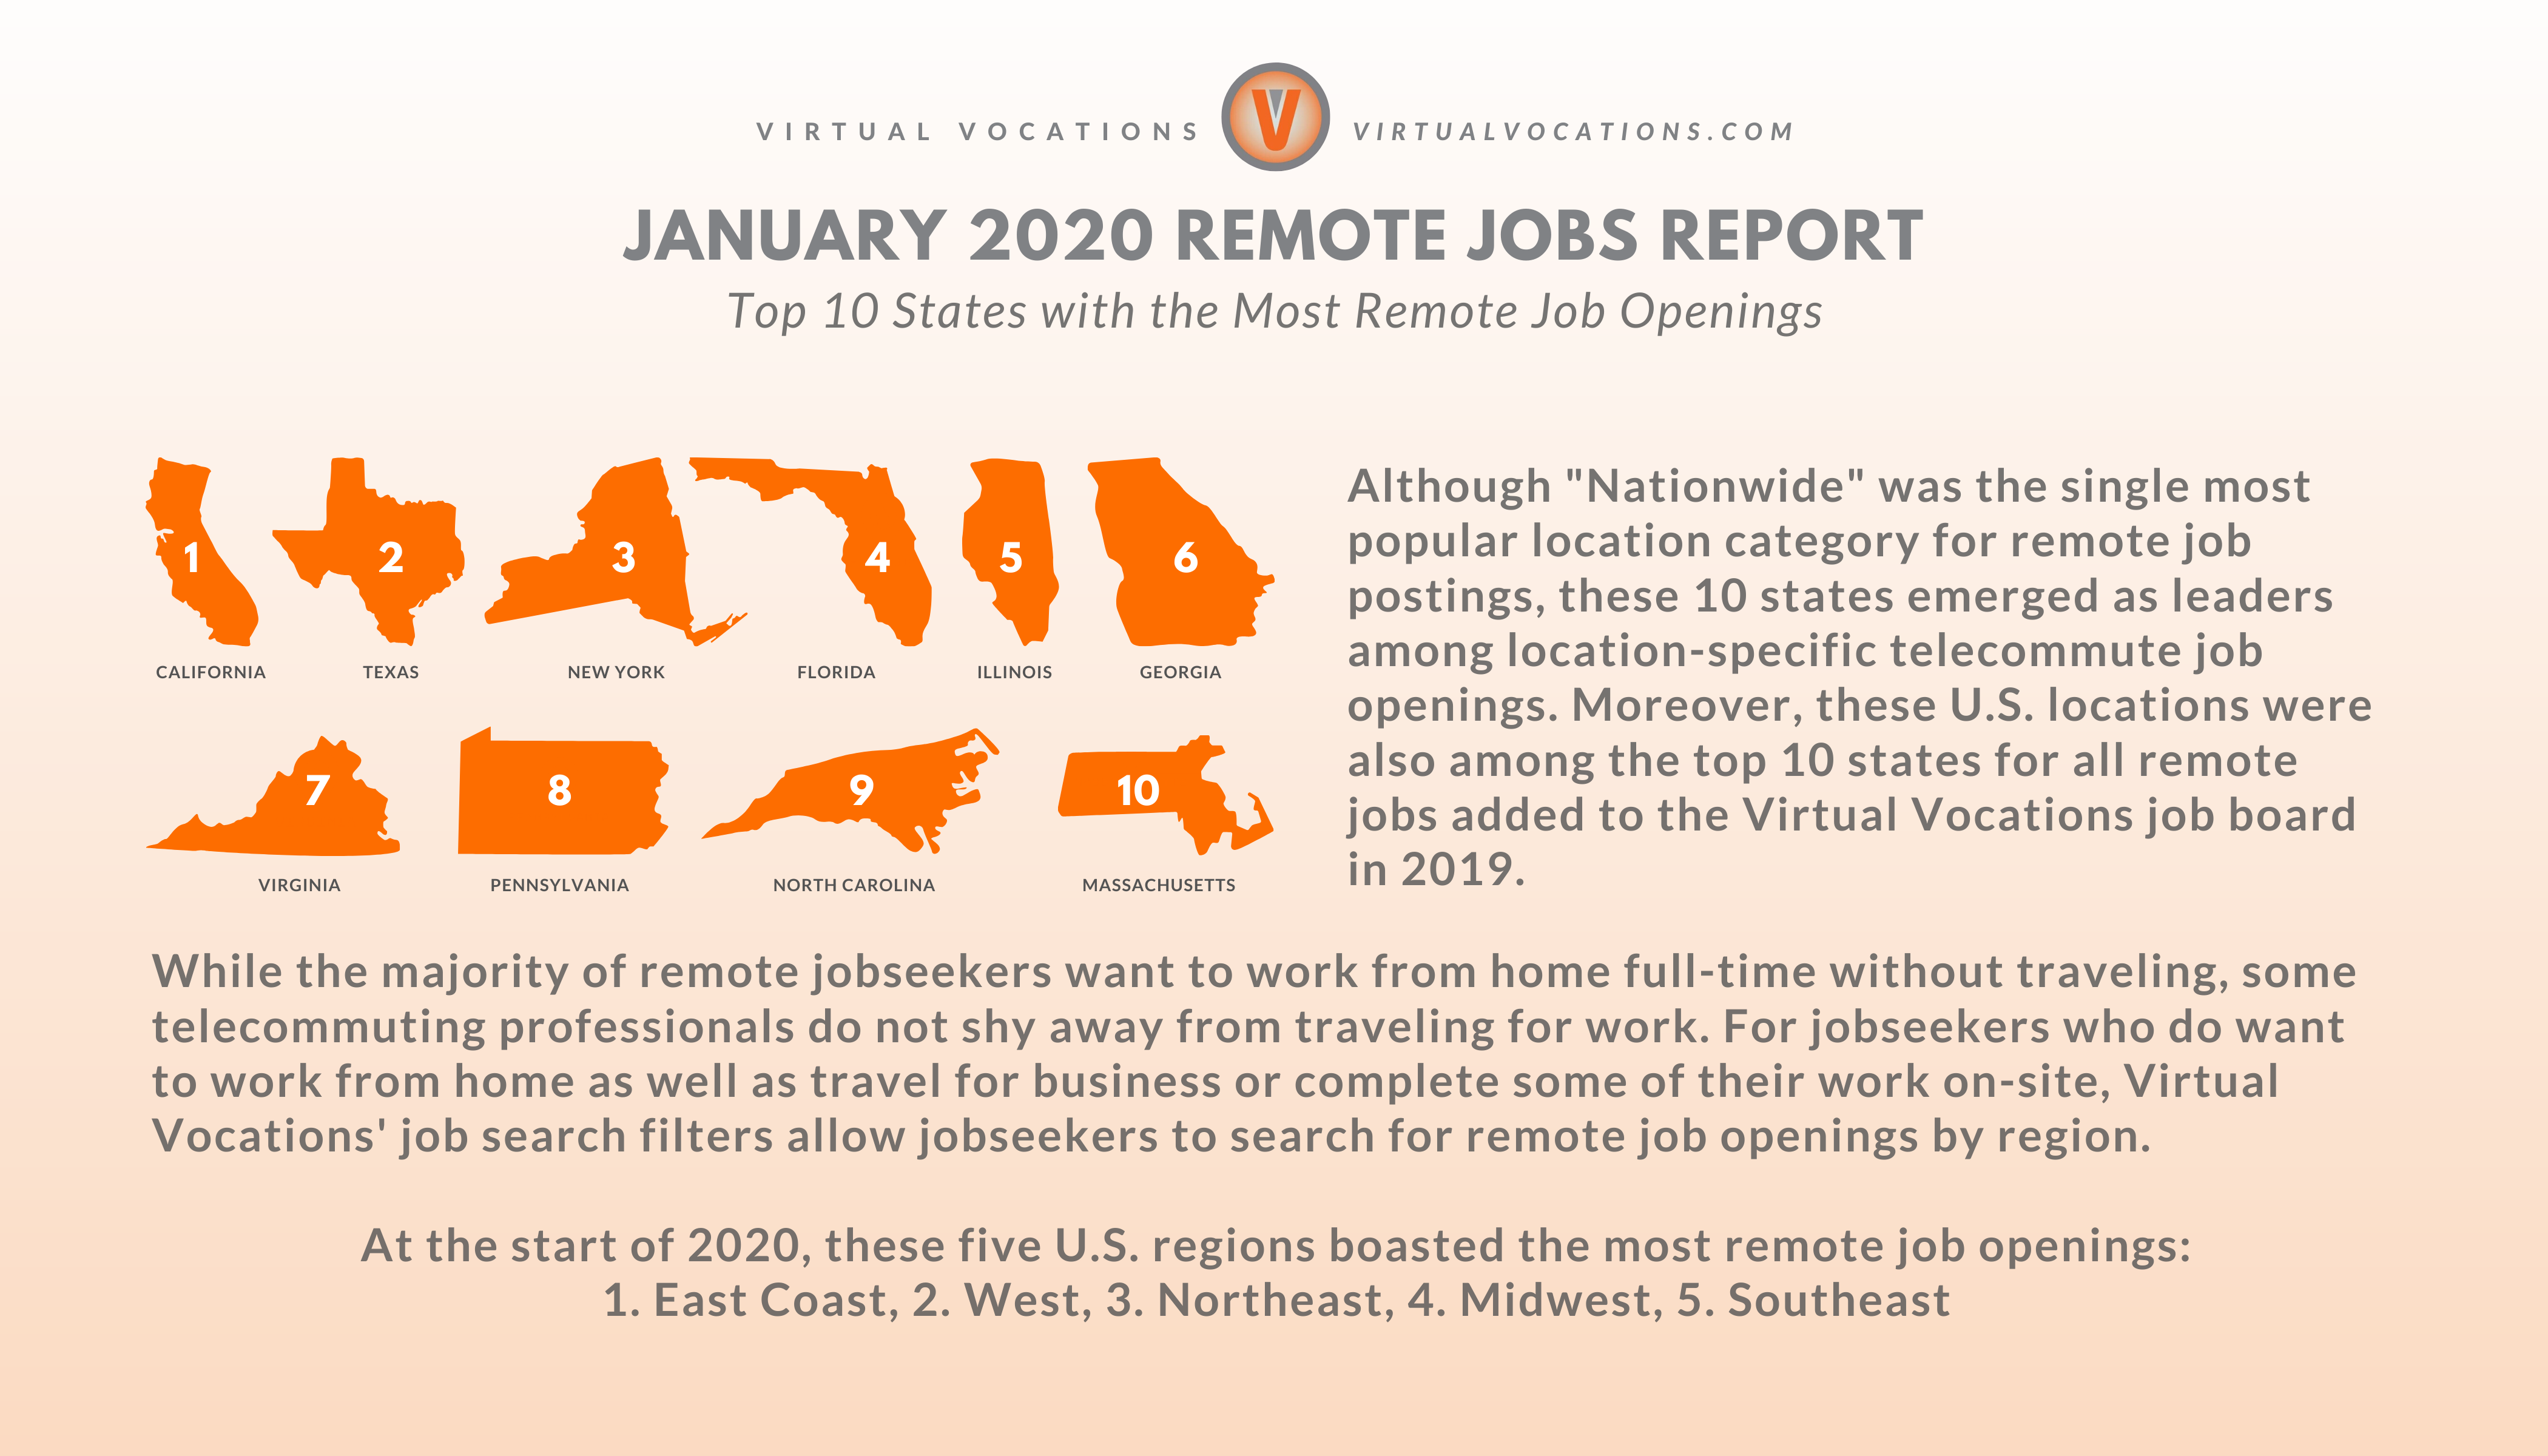 Top 10 States with the Most Remote Job Openings - January 2020 remote jobs report - Virtual Vocations